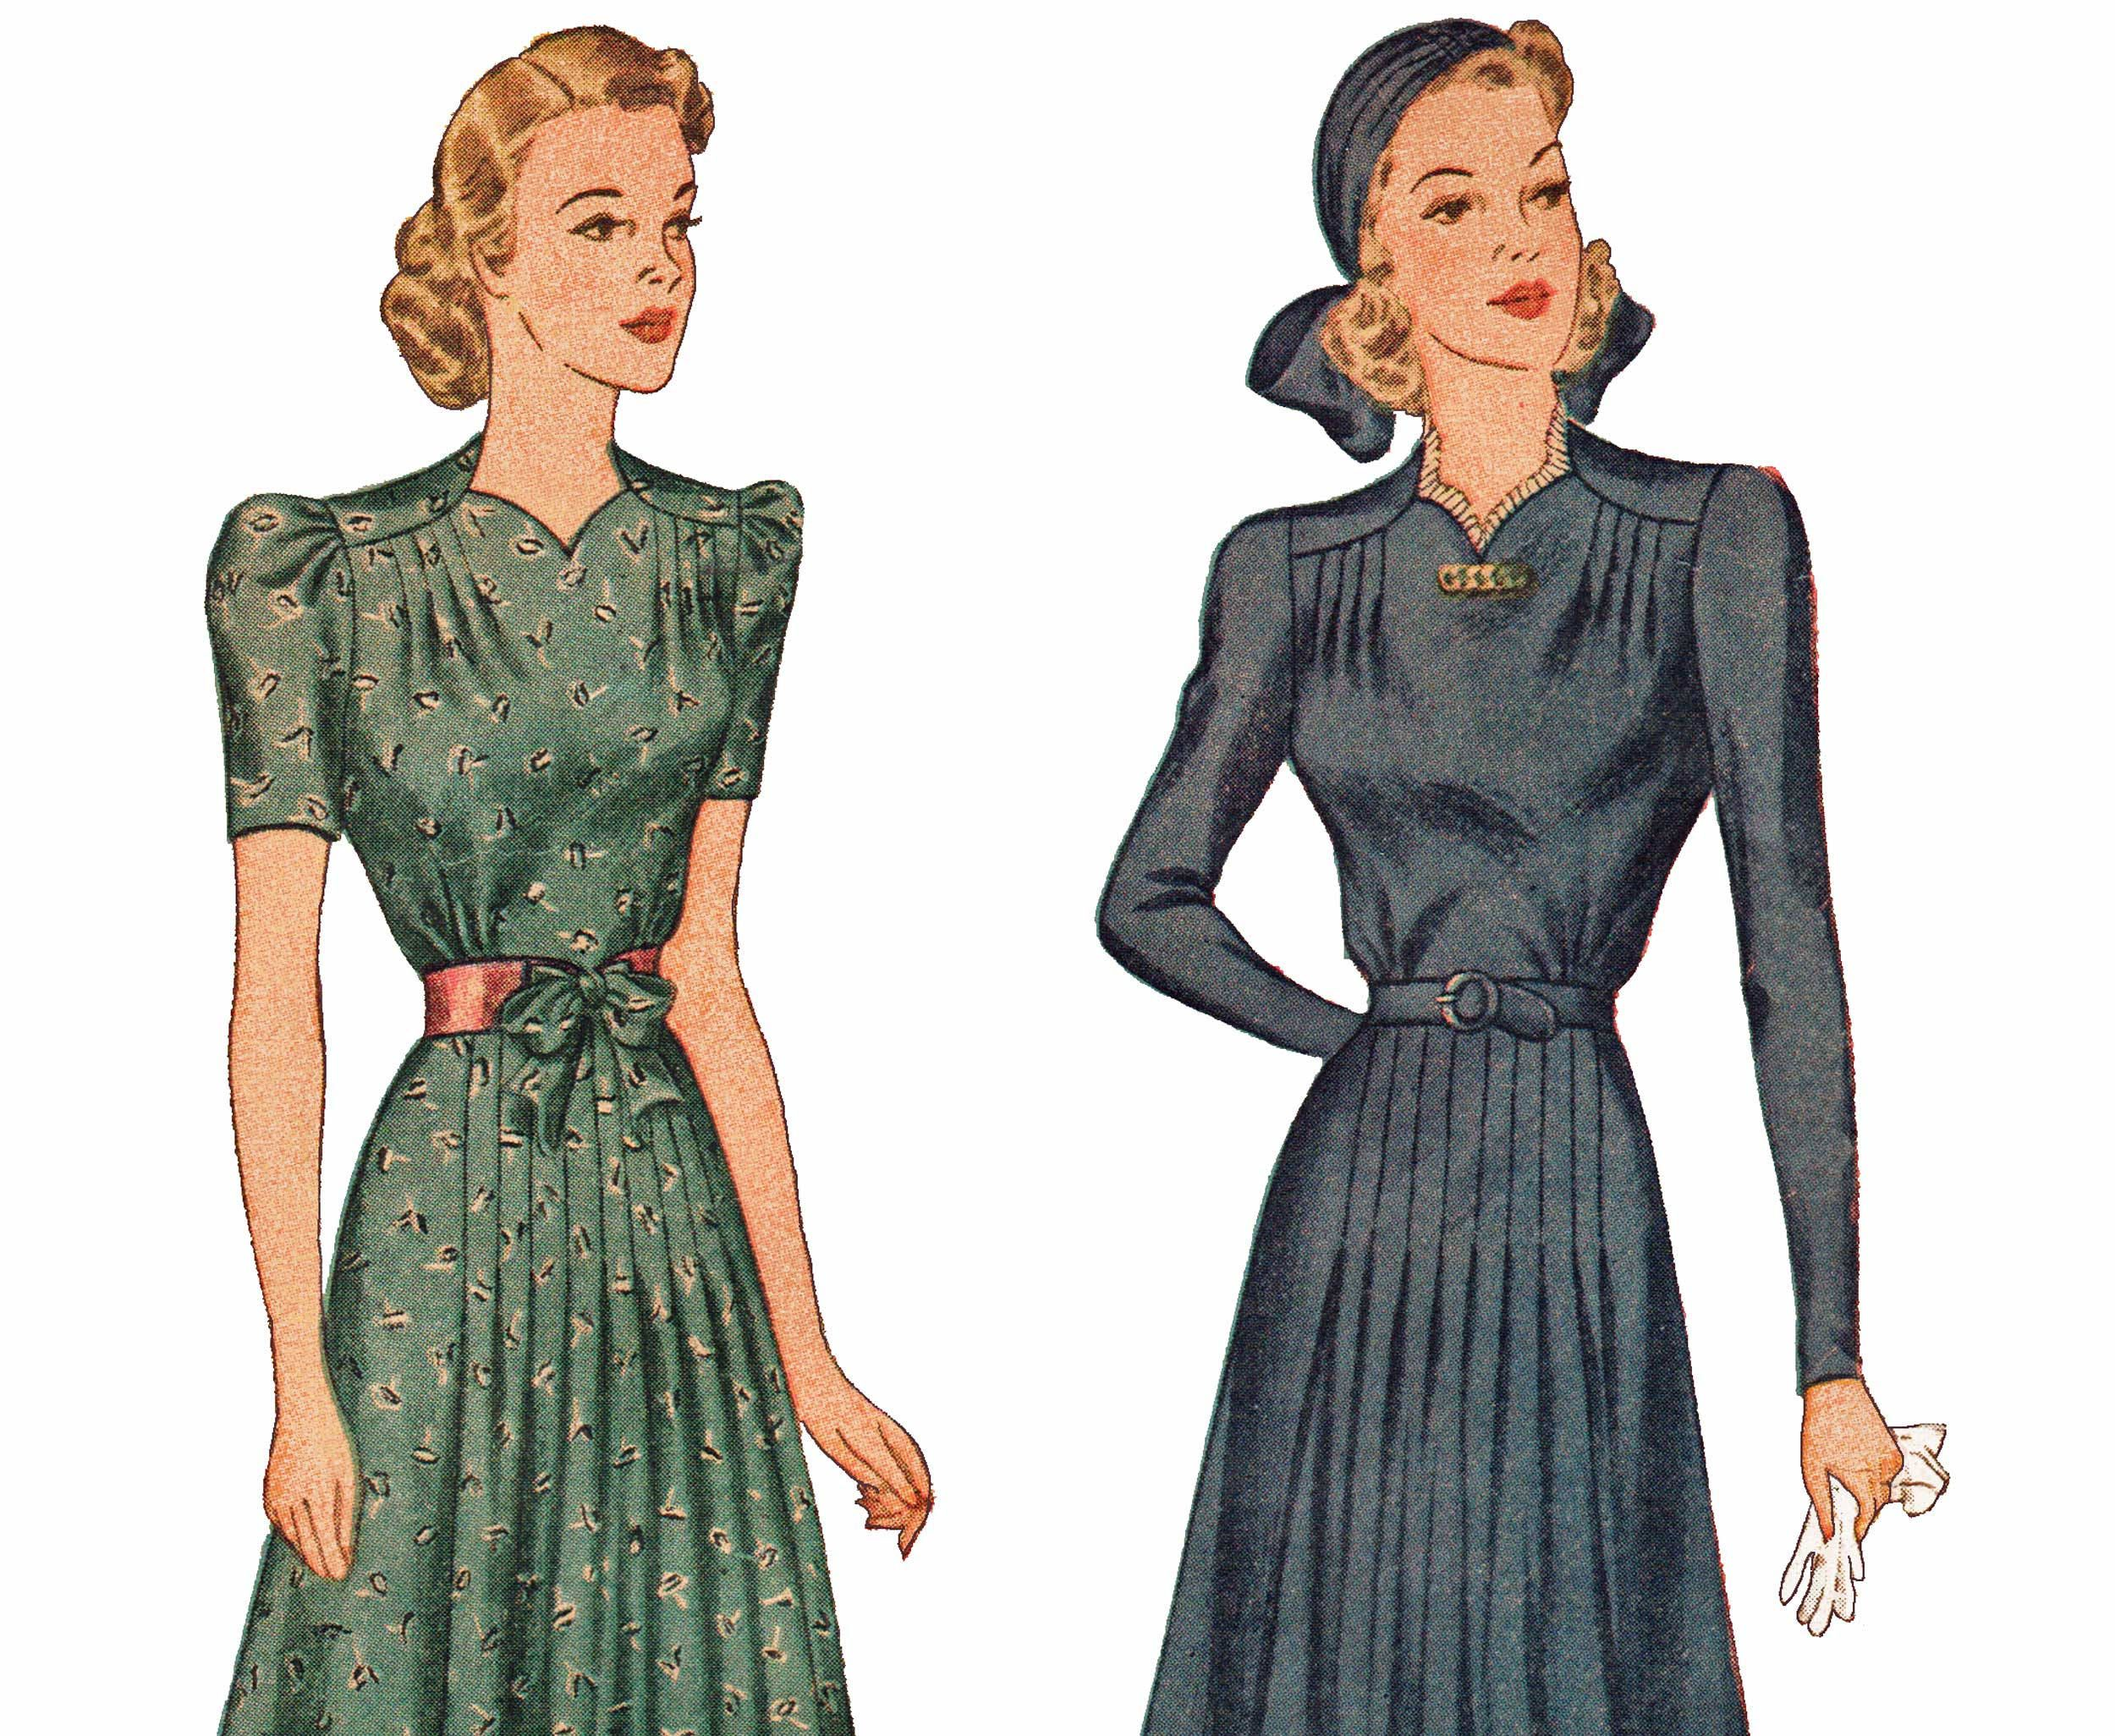 1940s Vintage Sewing Pattern Simplicity 3384 Misses Dress And Turban Forward Shoulder Tuck Flared Dress Size 14 Bust 32 Vintage 40s Dress Dresses Afternoon Dress